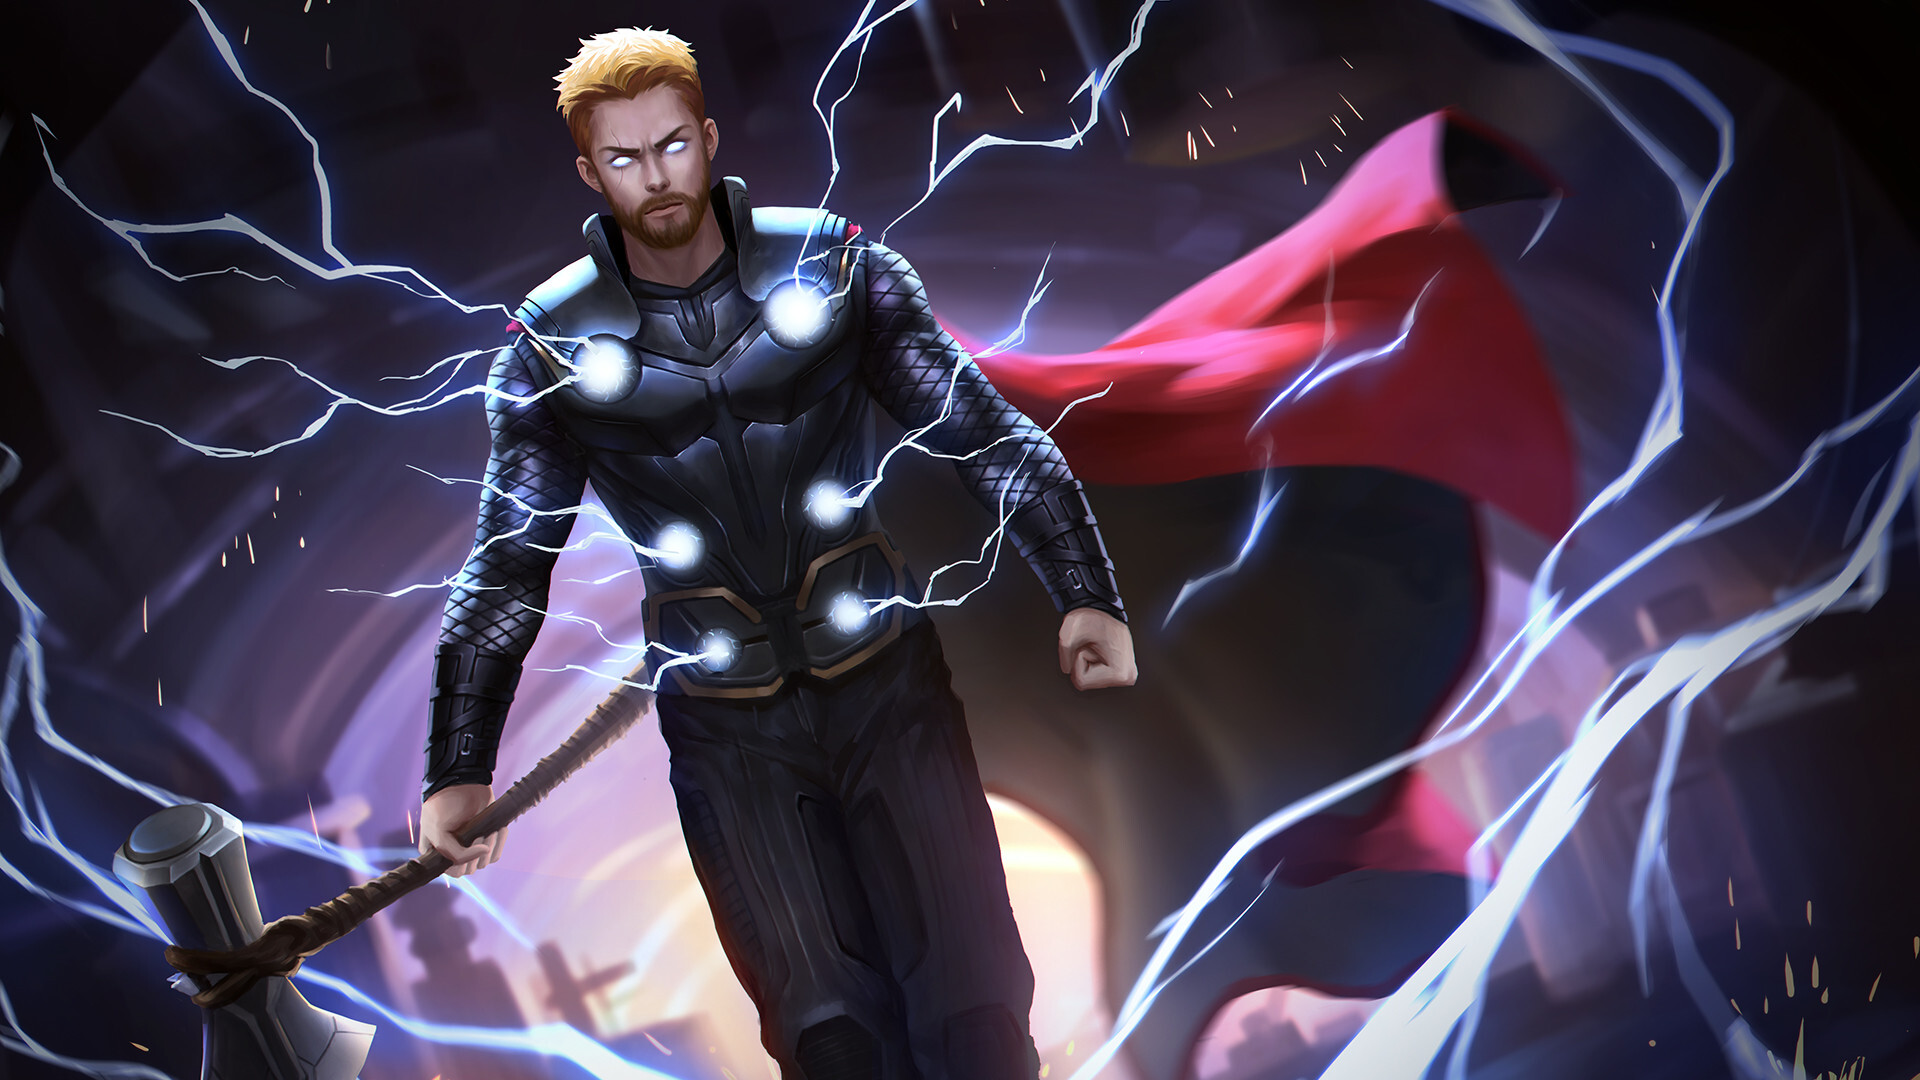 1920x1080 Thor With His New Hammer In Avengers Infinity War Laptop